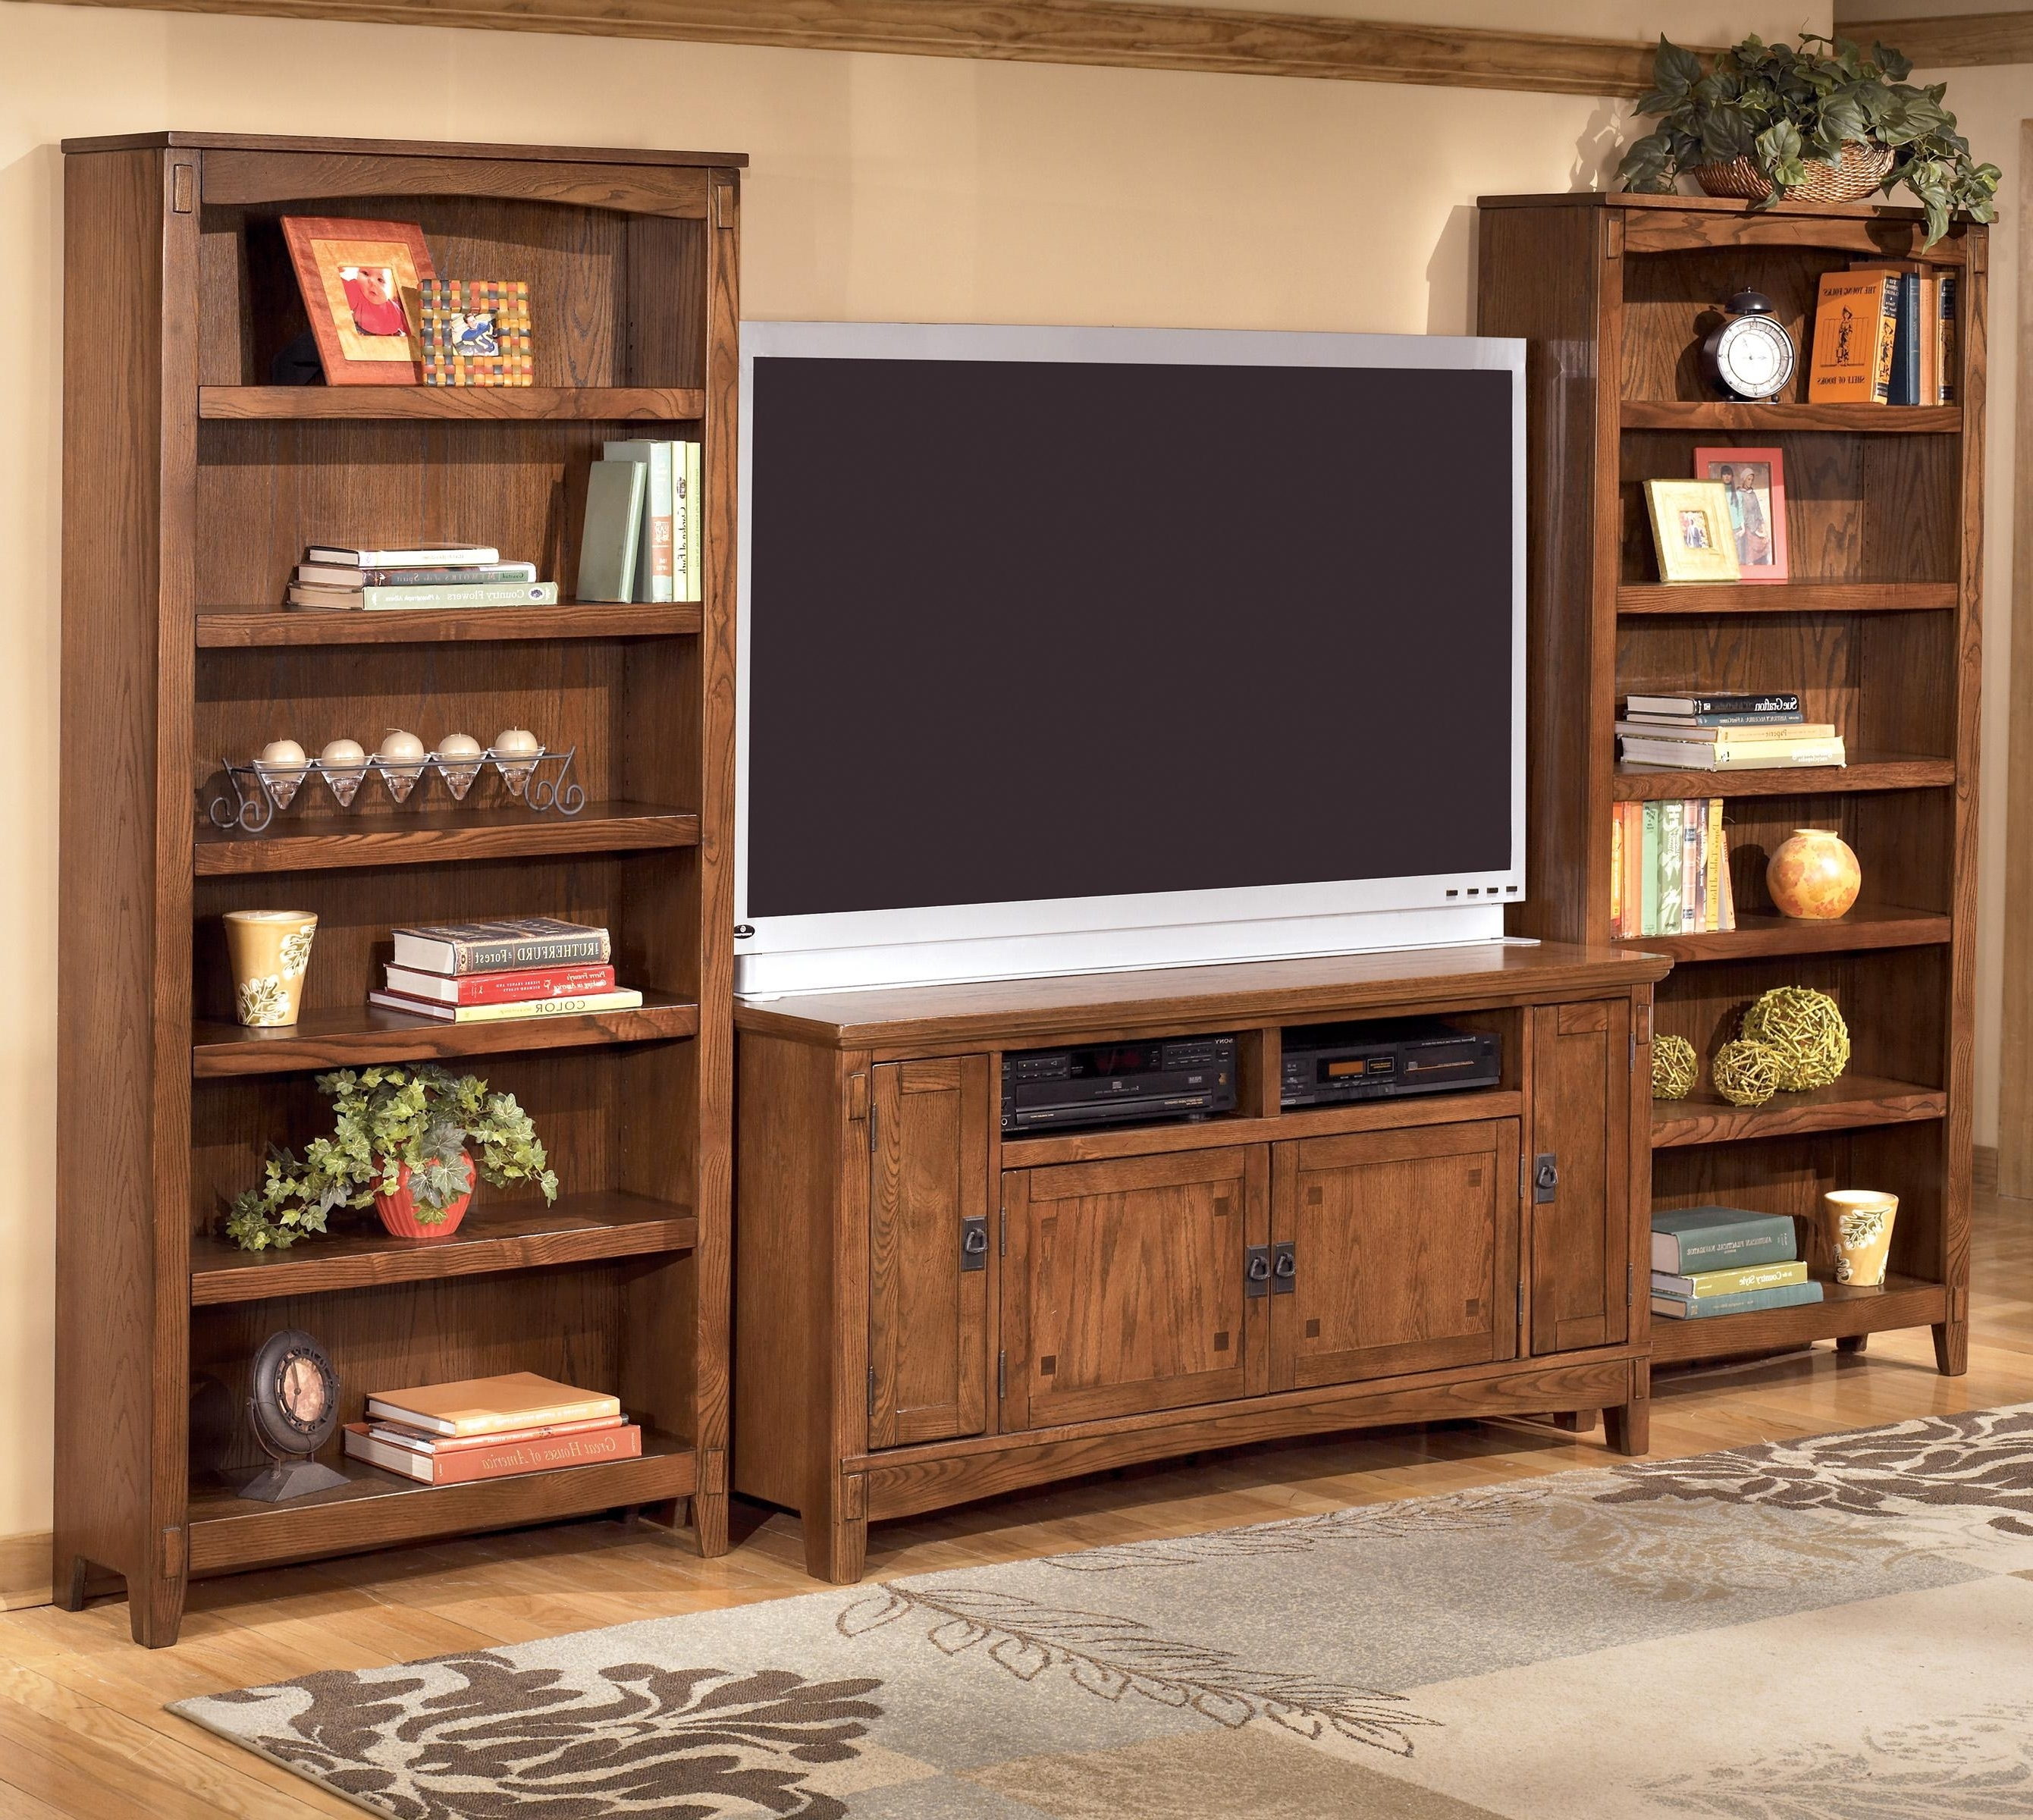 Most Popular Bookshelves With Tv Space Pertaining To Shelves : Terrific Excellent Tv Cabinet And Bookcase Modern Stand (View 15 of 15)